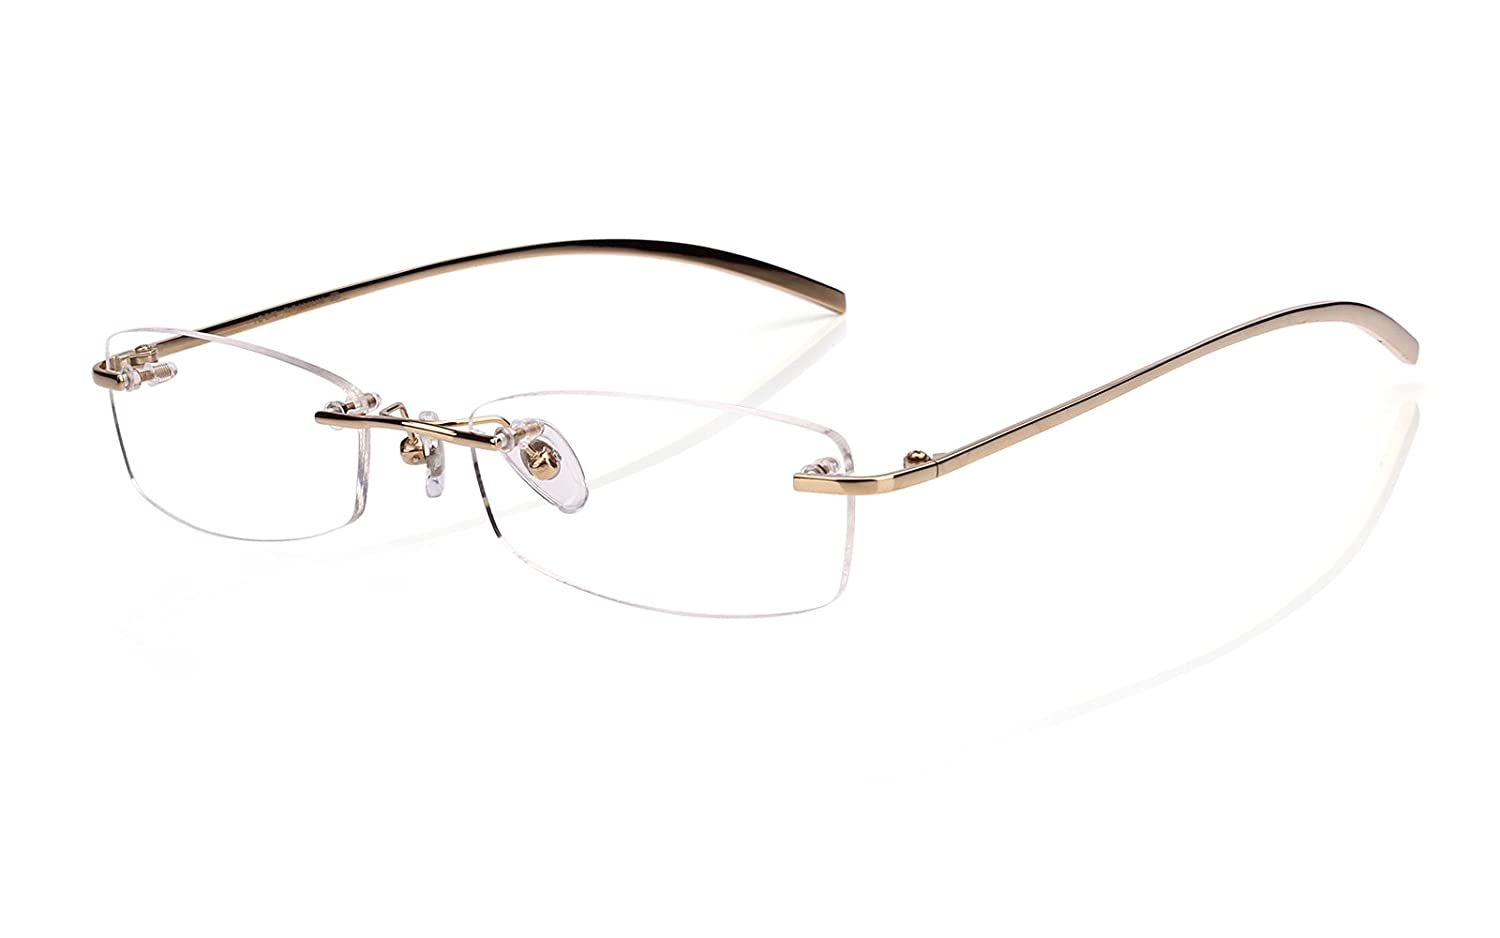 24d9a4954e Amazon.com  Agstum Pure Titanium Rimless Glasses Prescription Eyeglasses Rx  (Black